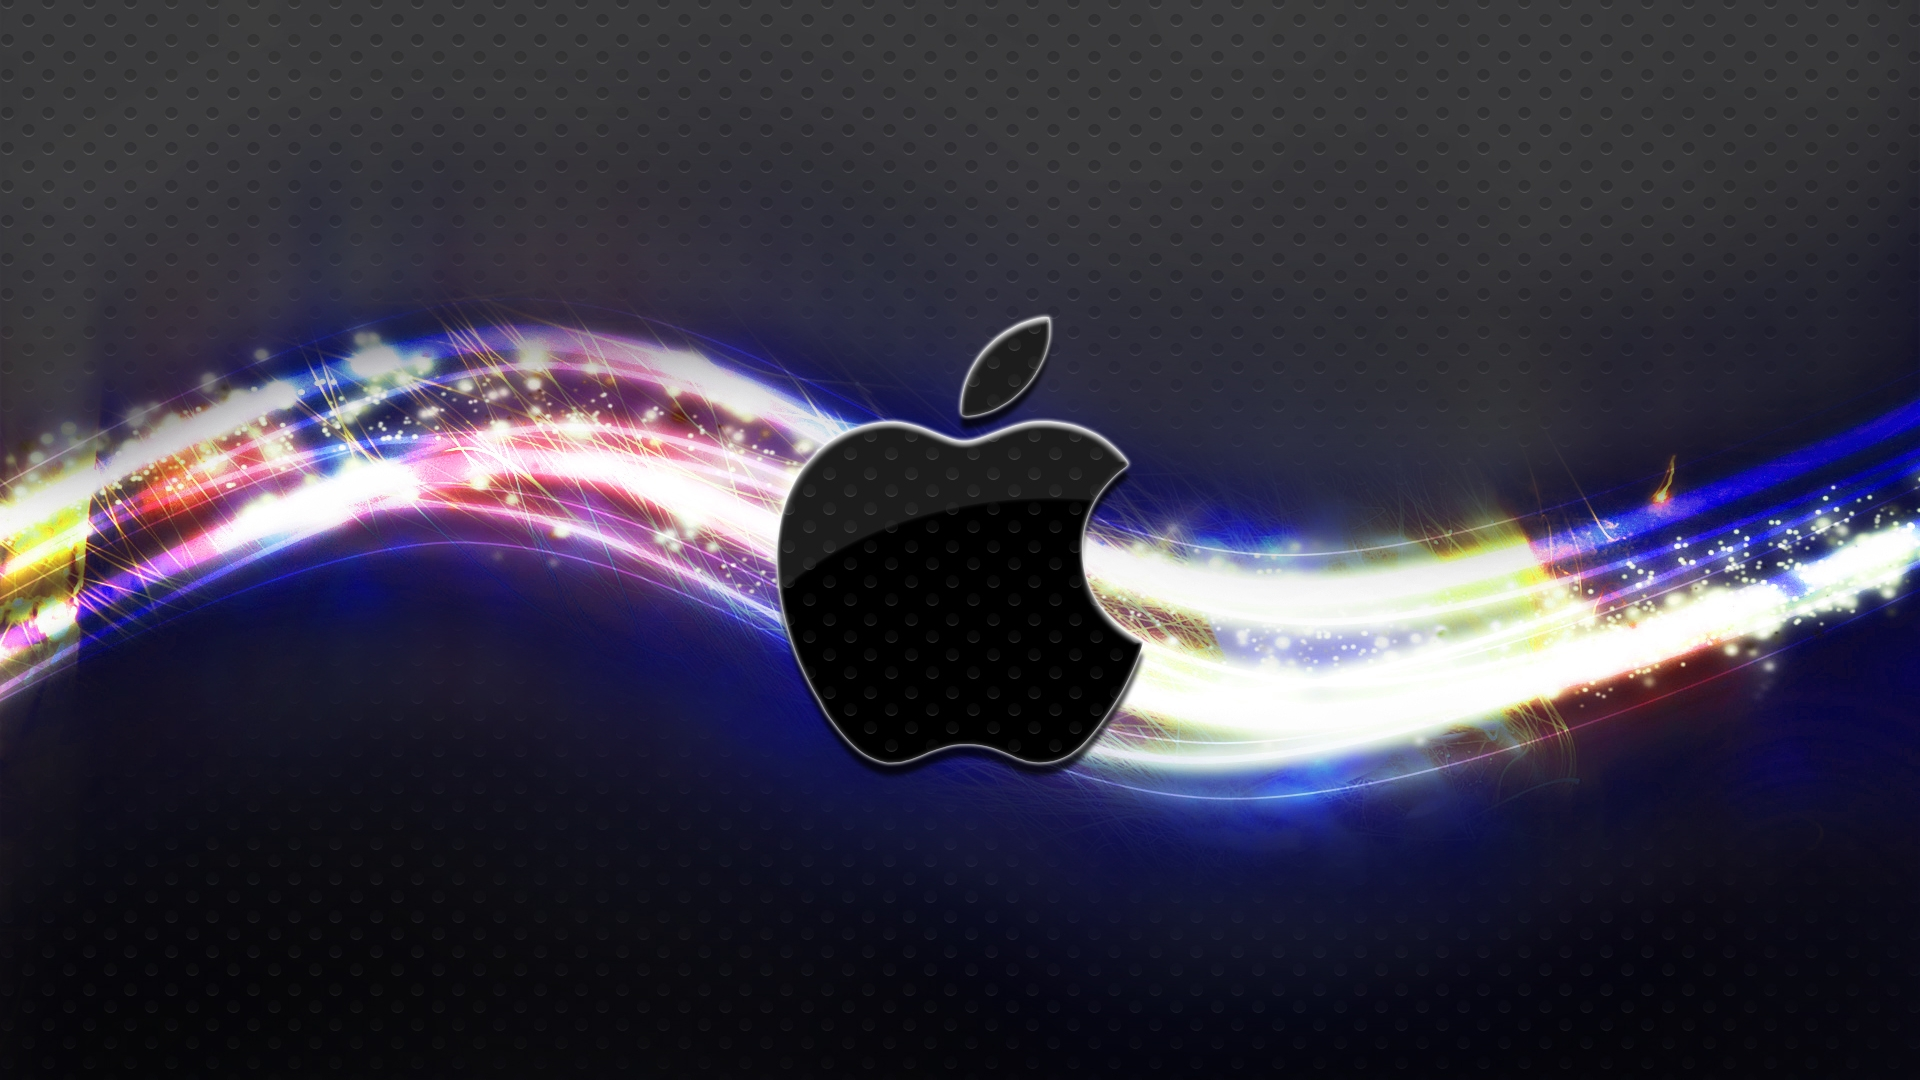 colorful apple os x wallpaper - hd wallpapers